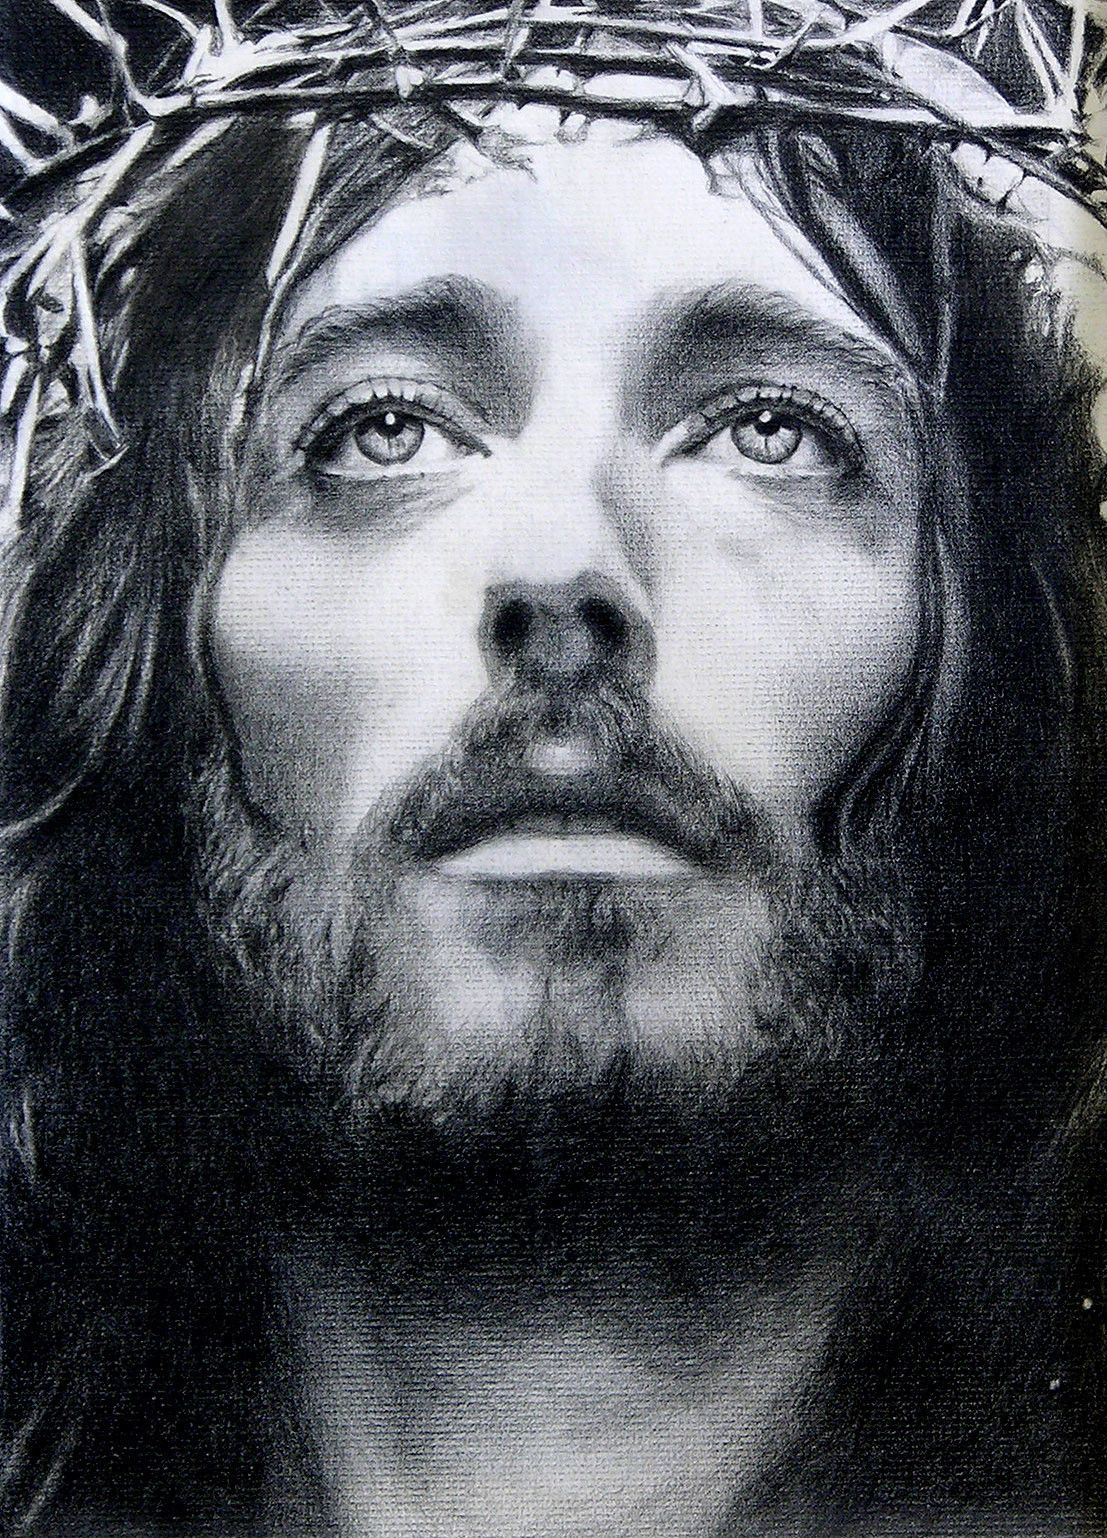 Jesus sketch drawing inspired from franco zeffirellis movie jesus of nazareth actor robert powell